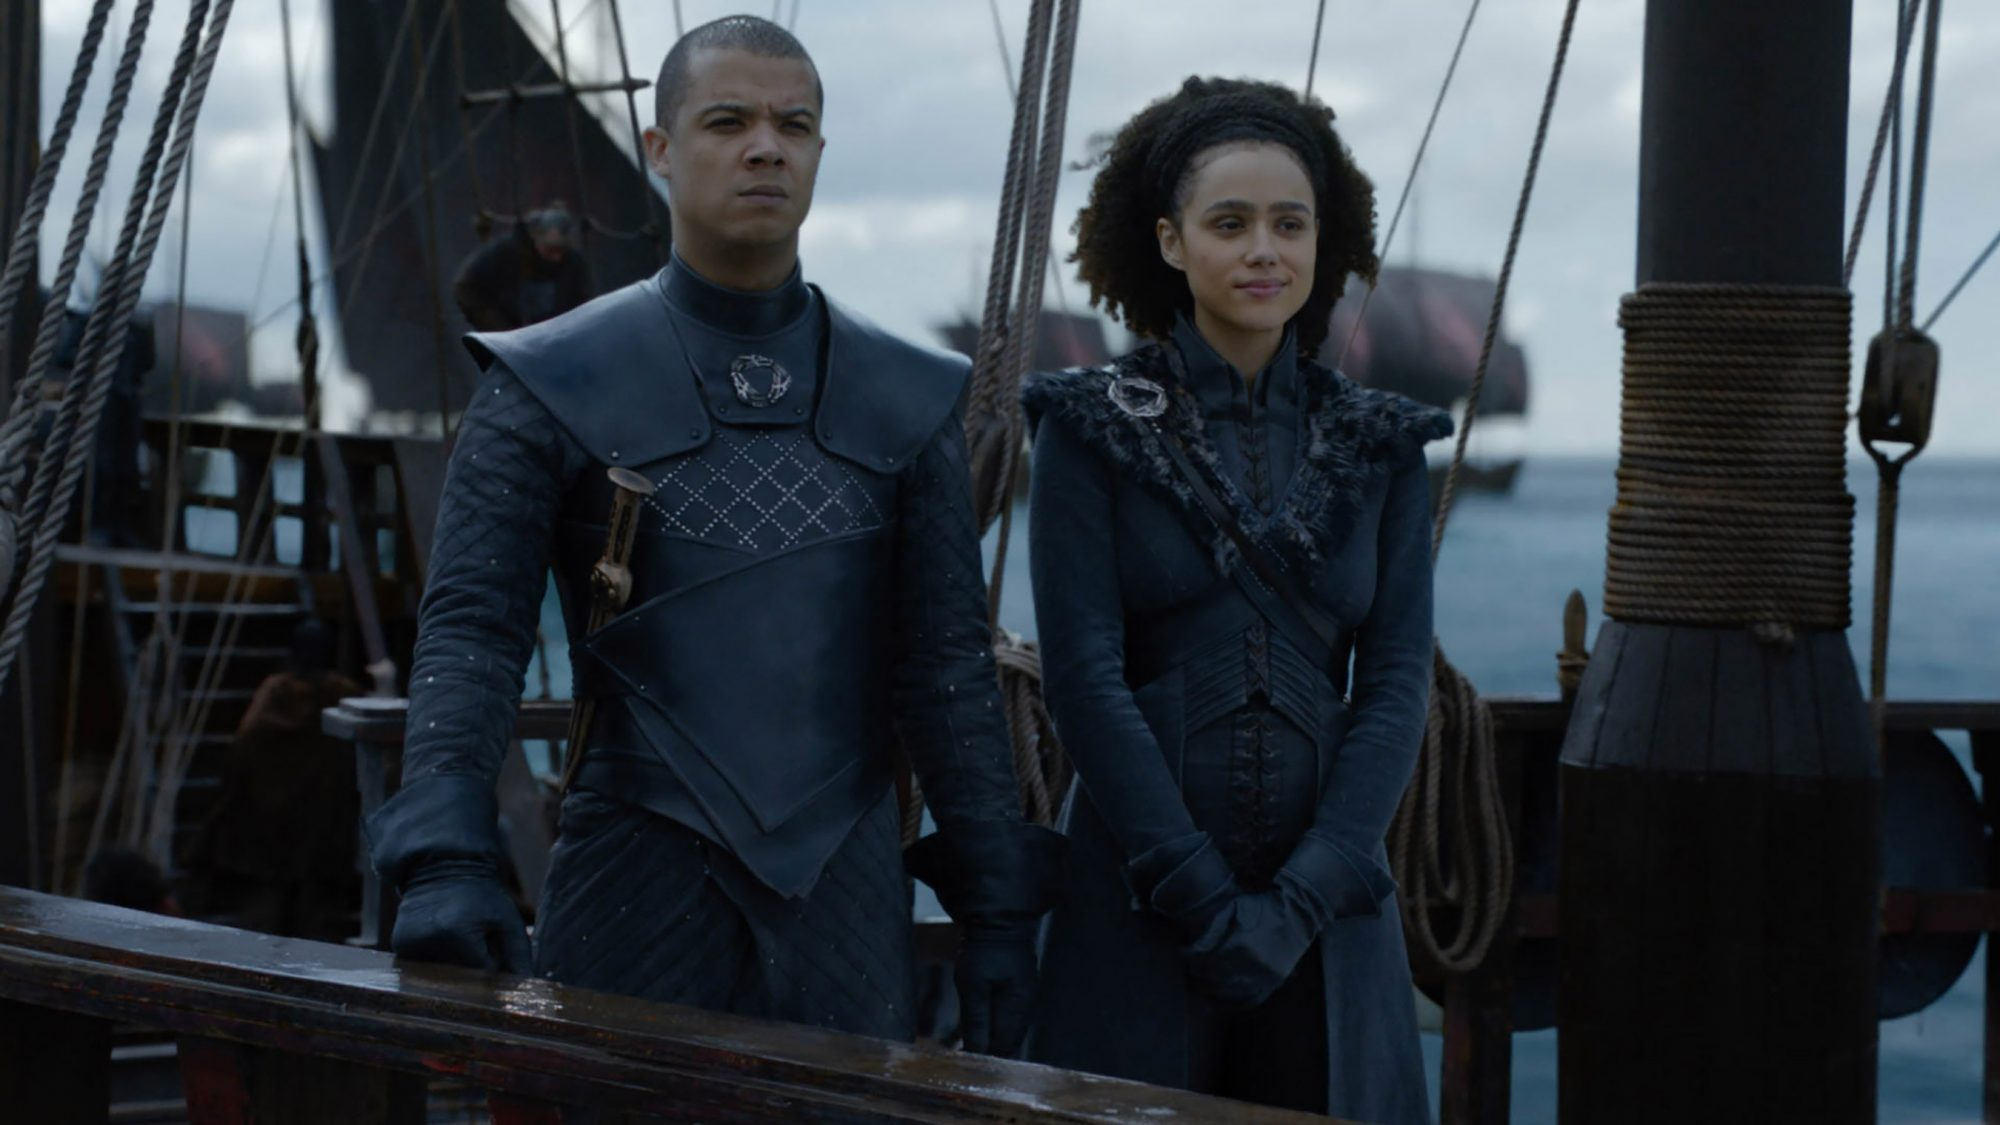 Game of Thrones Season 8, Episode 4 (L to R) Jacob Anderson as Grey Worm and Nathalie Emmanuel as Missandei - Photo: Courtesy of HBO